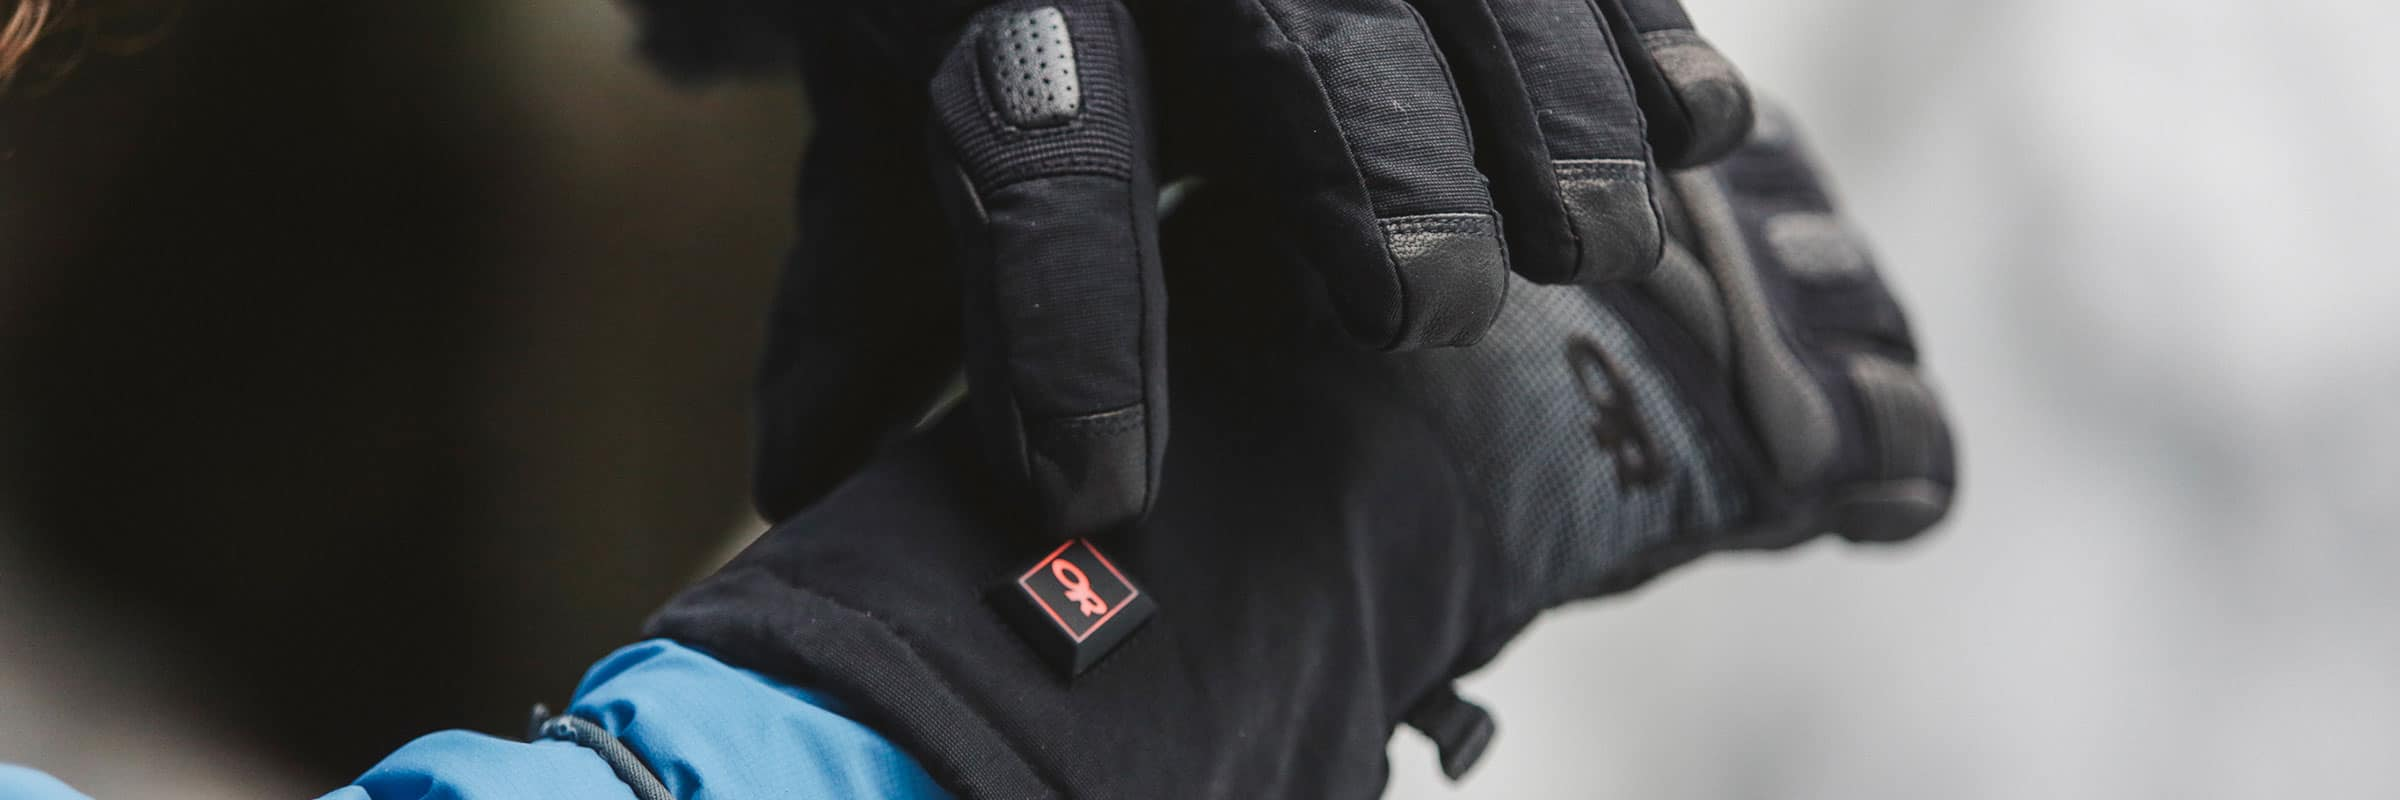 Outdoor Research. Outdoor Research Heated Gloves: Daylong Heated Comfort